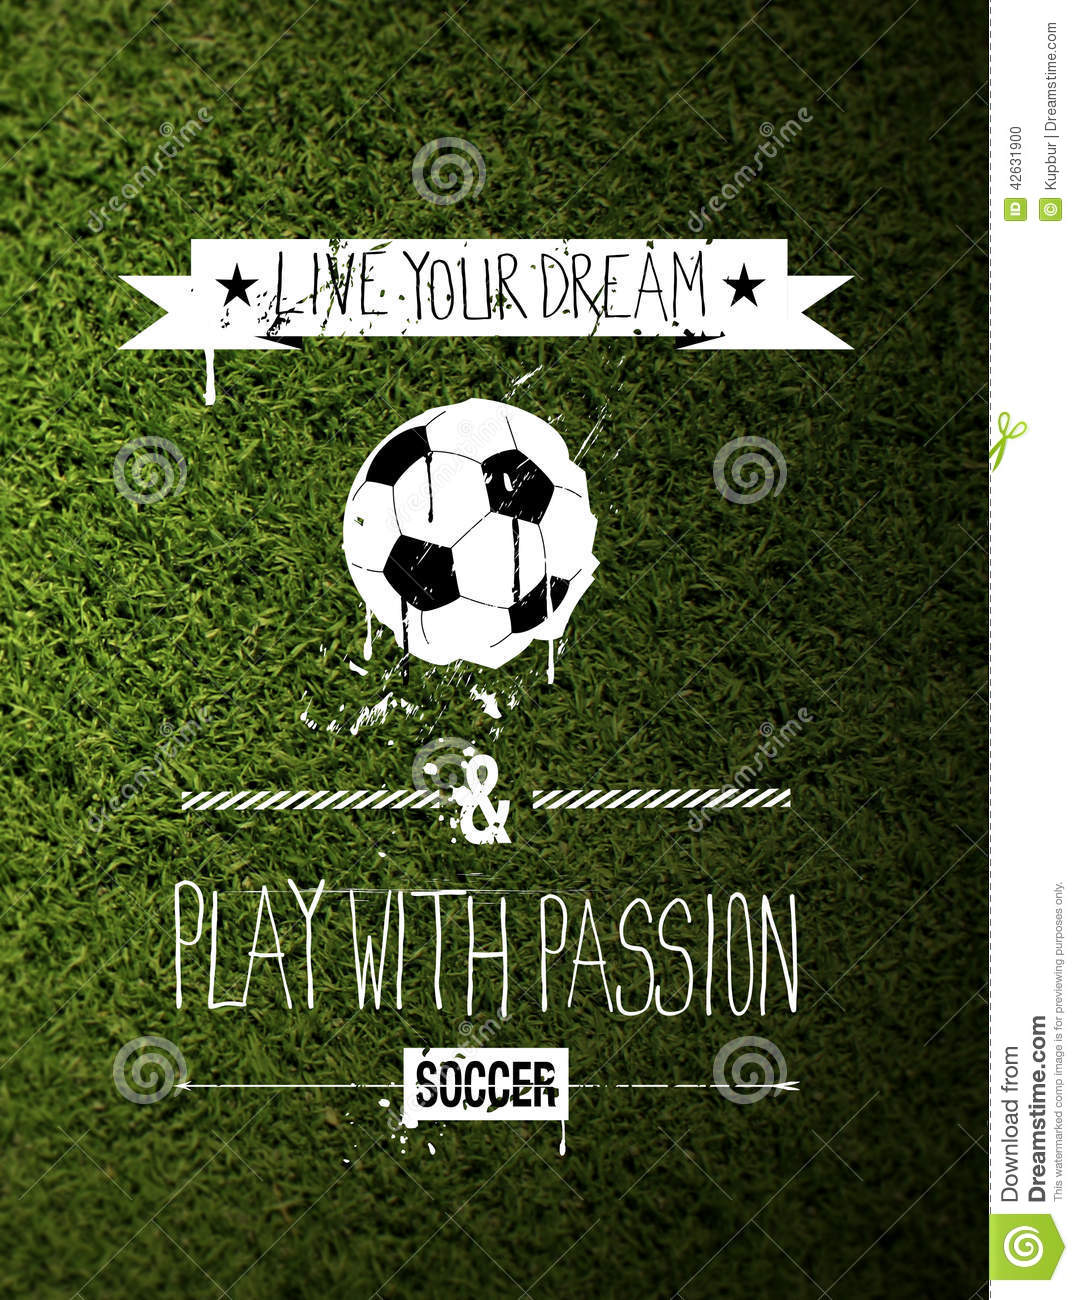 citation de typographie du football sur l 39 herbe photo. Black Bedroom Furniture Sets. Home Design Ideas